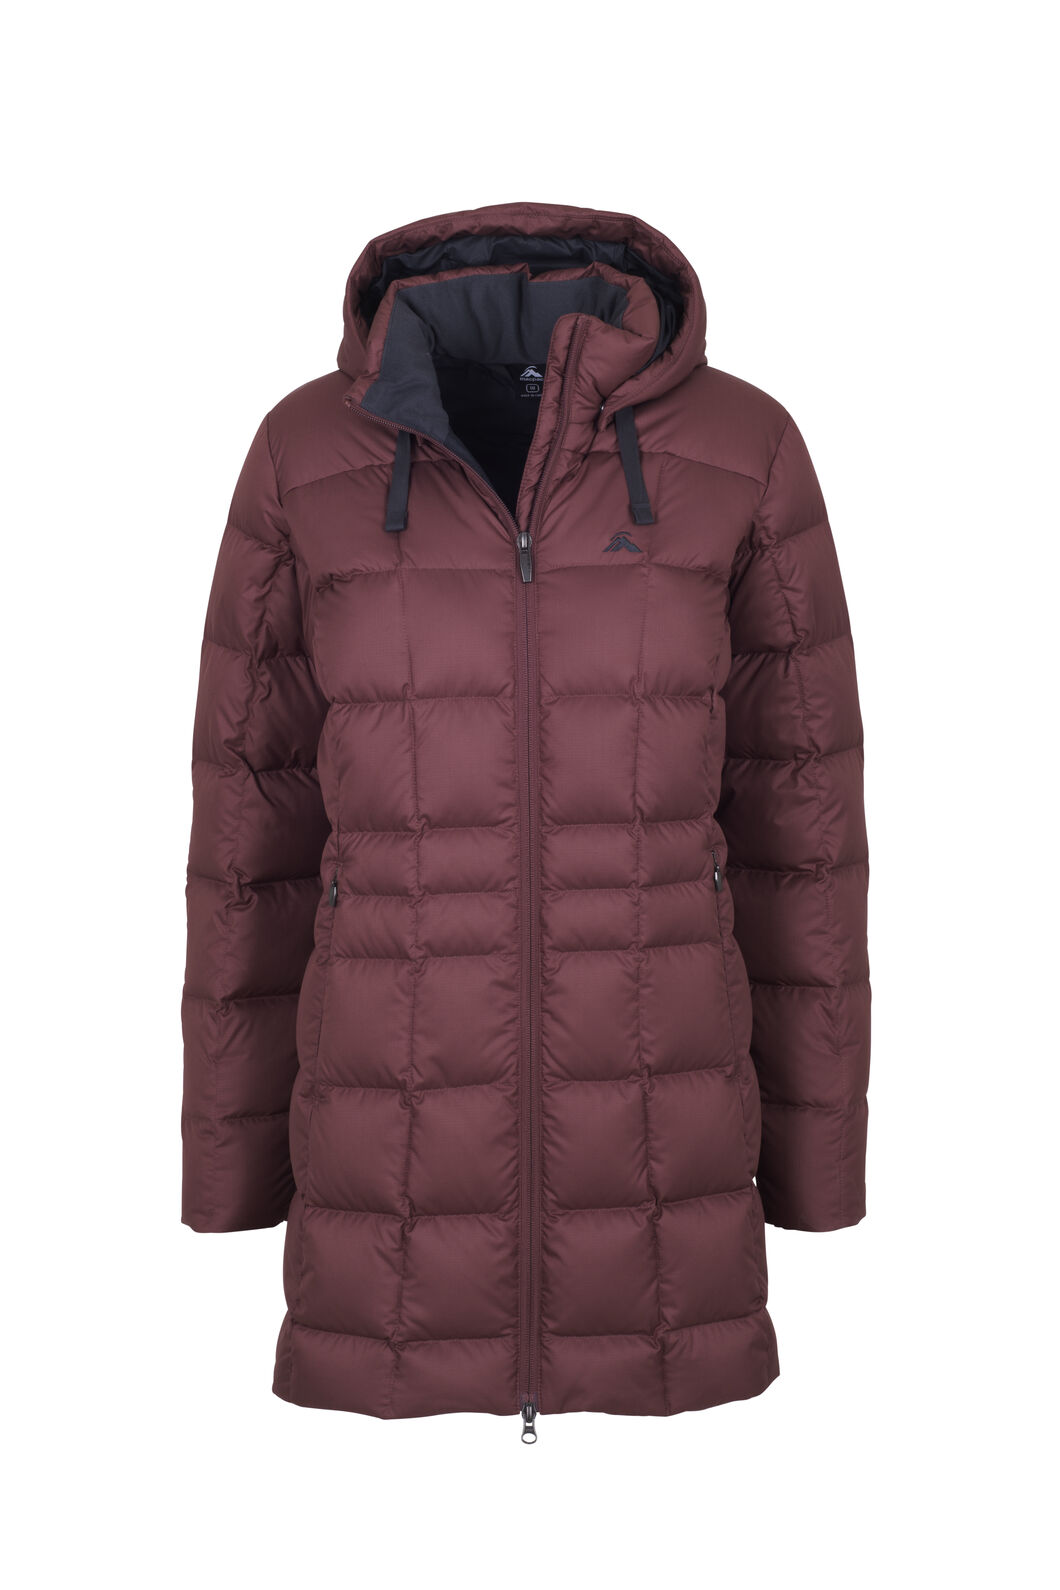 Macpac Aurora Down Coat V3 - Women's, Bitter Chocolate, hi-res